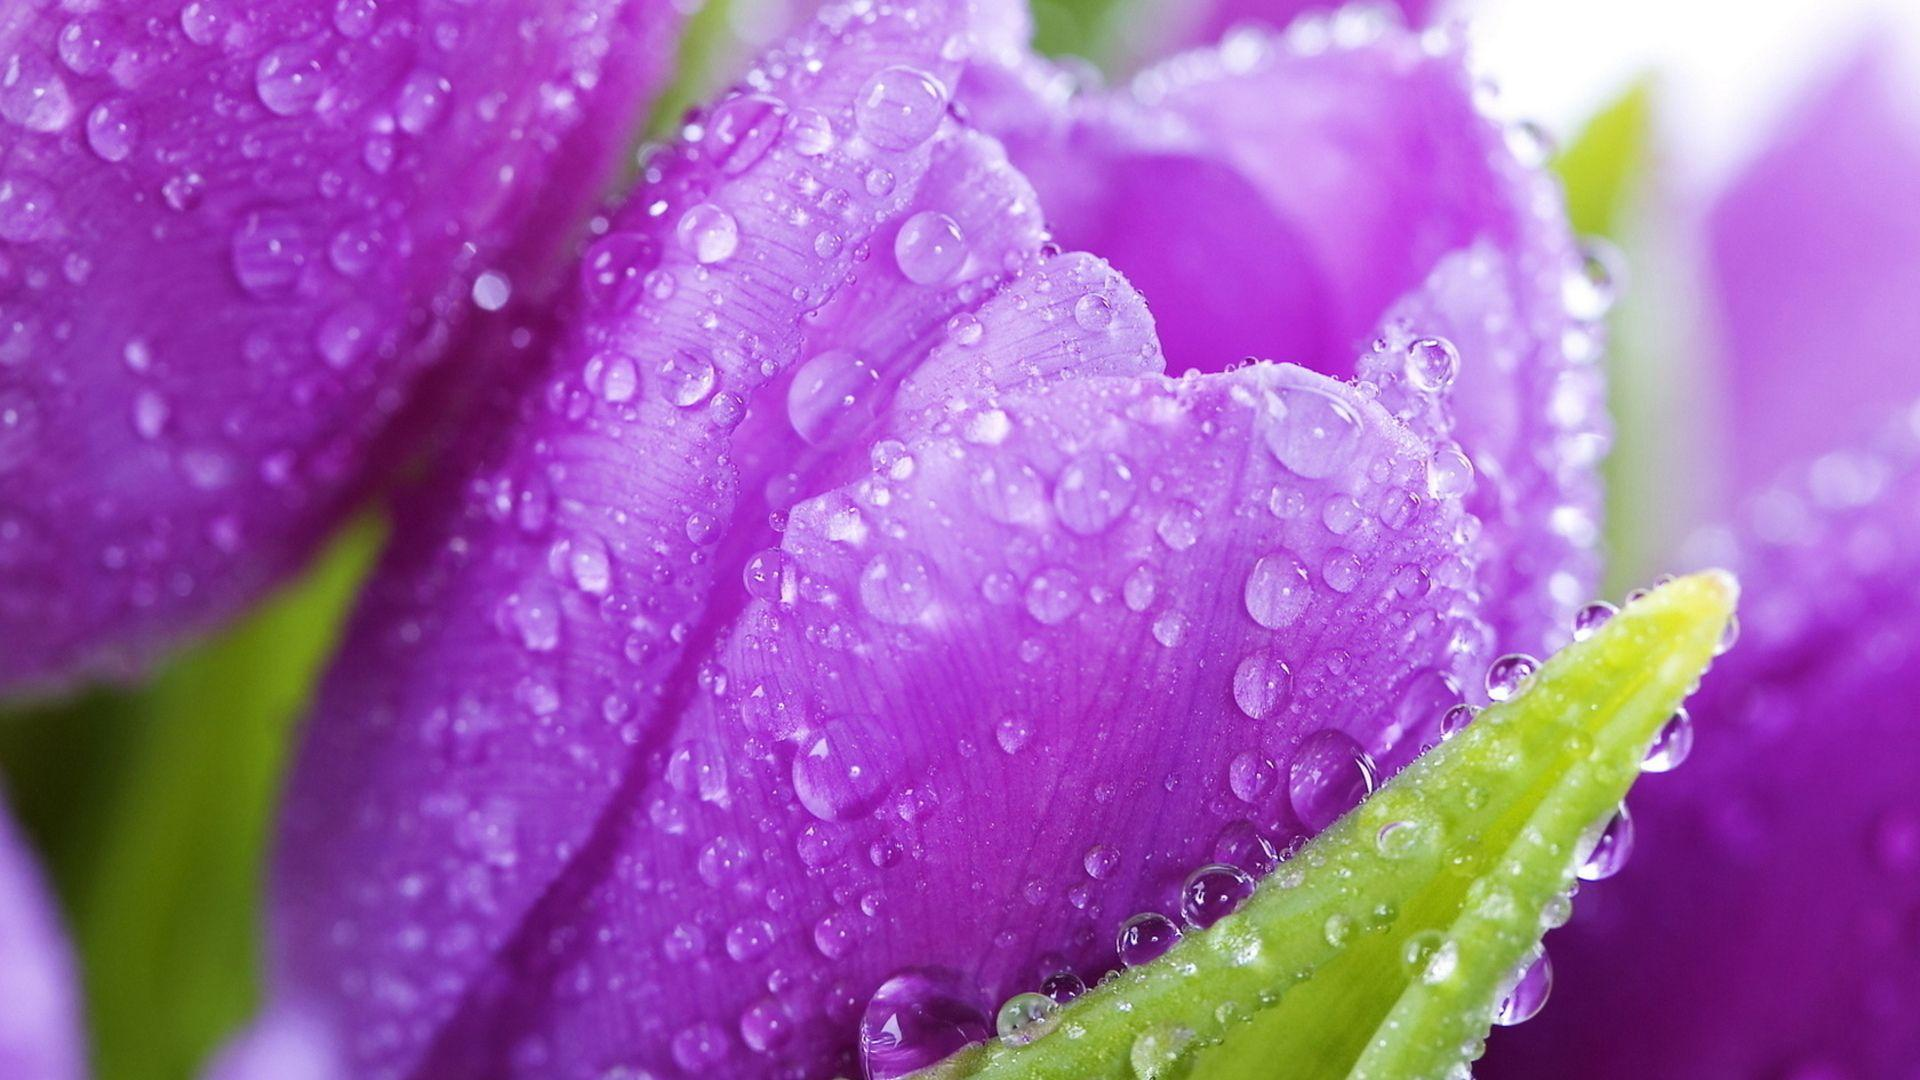 Beautiful Raindrops On Flowers Roses Wallpapers With Design Decorating